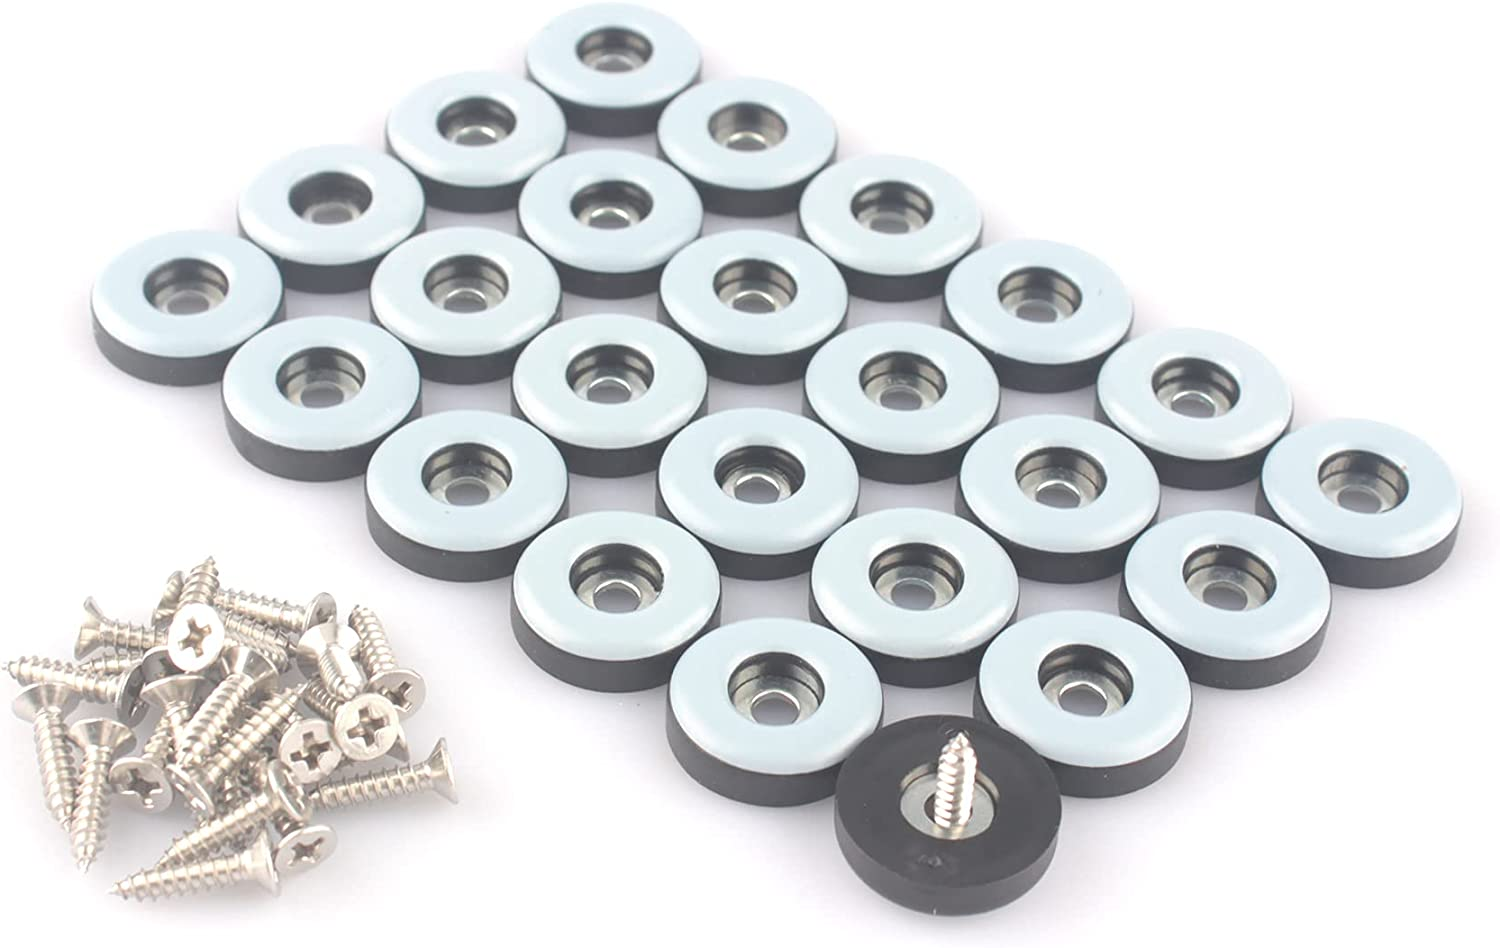 CSFMC Teflon Furniture Sliders Pads(24 Pack 7/8 inch(22mm) Base),Table/Chair/Cabinet/Sofa Small Size PTFE Glides,Stainless Steel Screw on Protect The Floor,Heavy Duty Sliding Block for Furniture